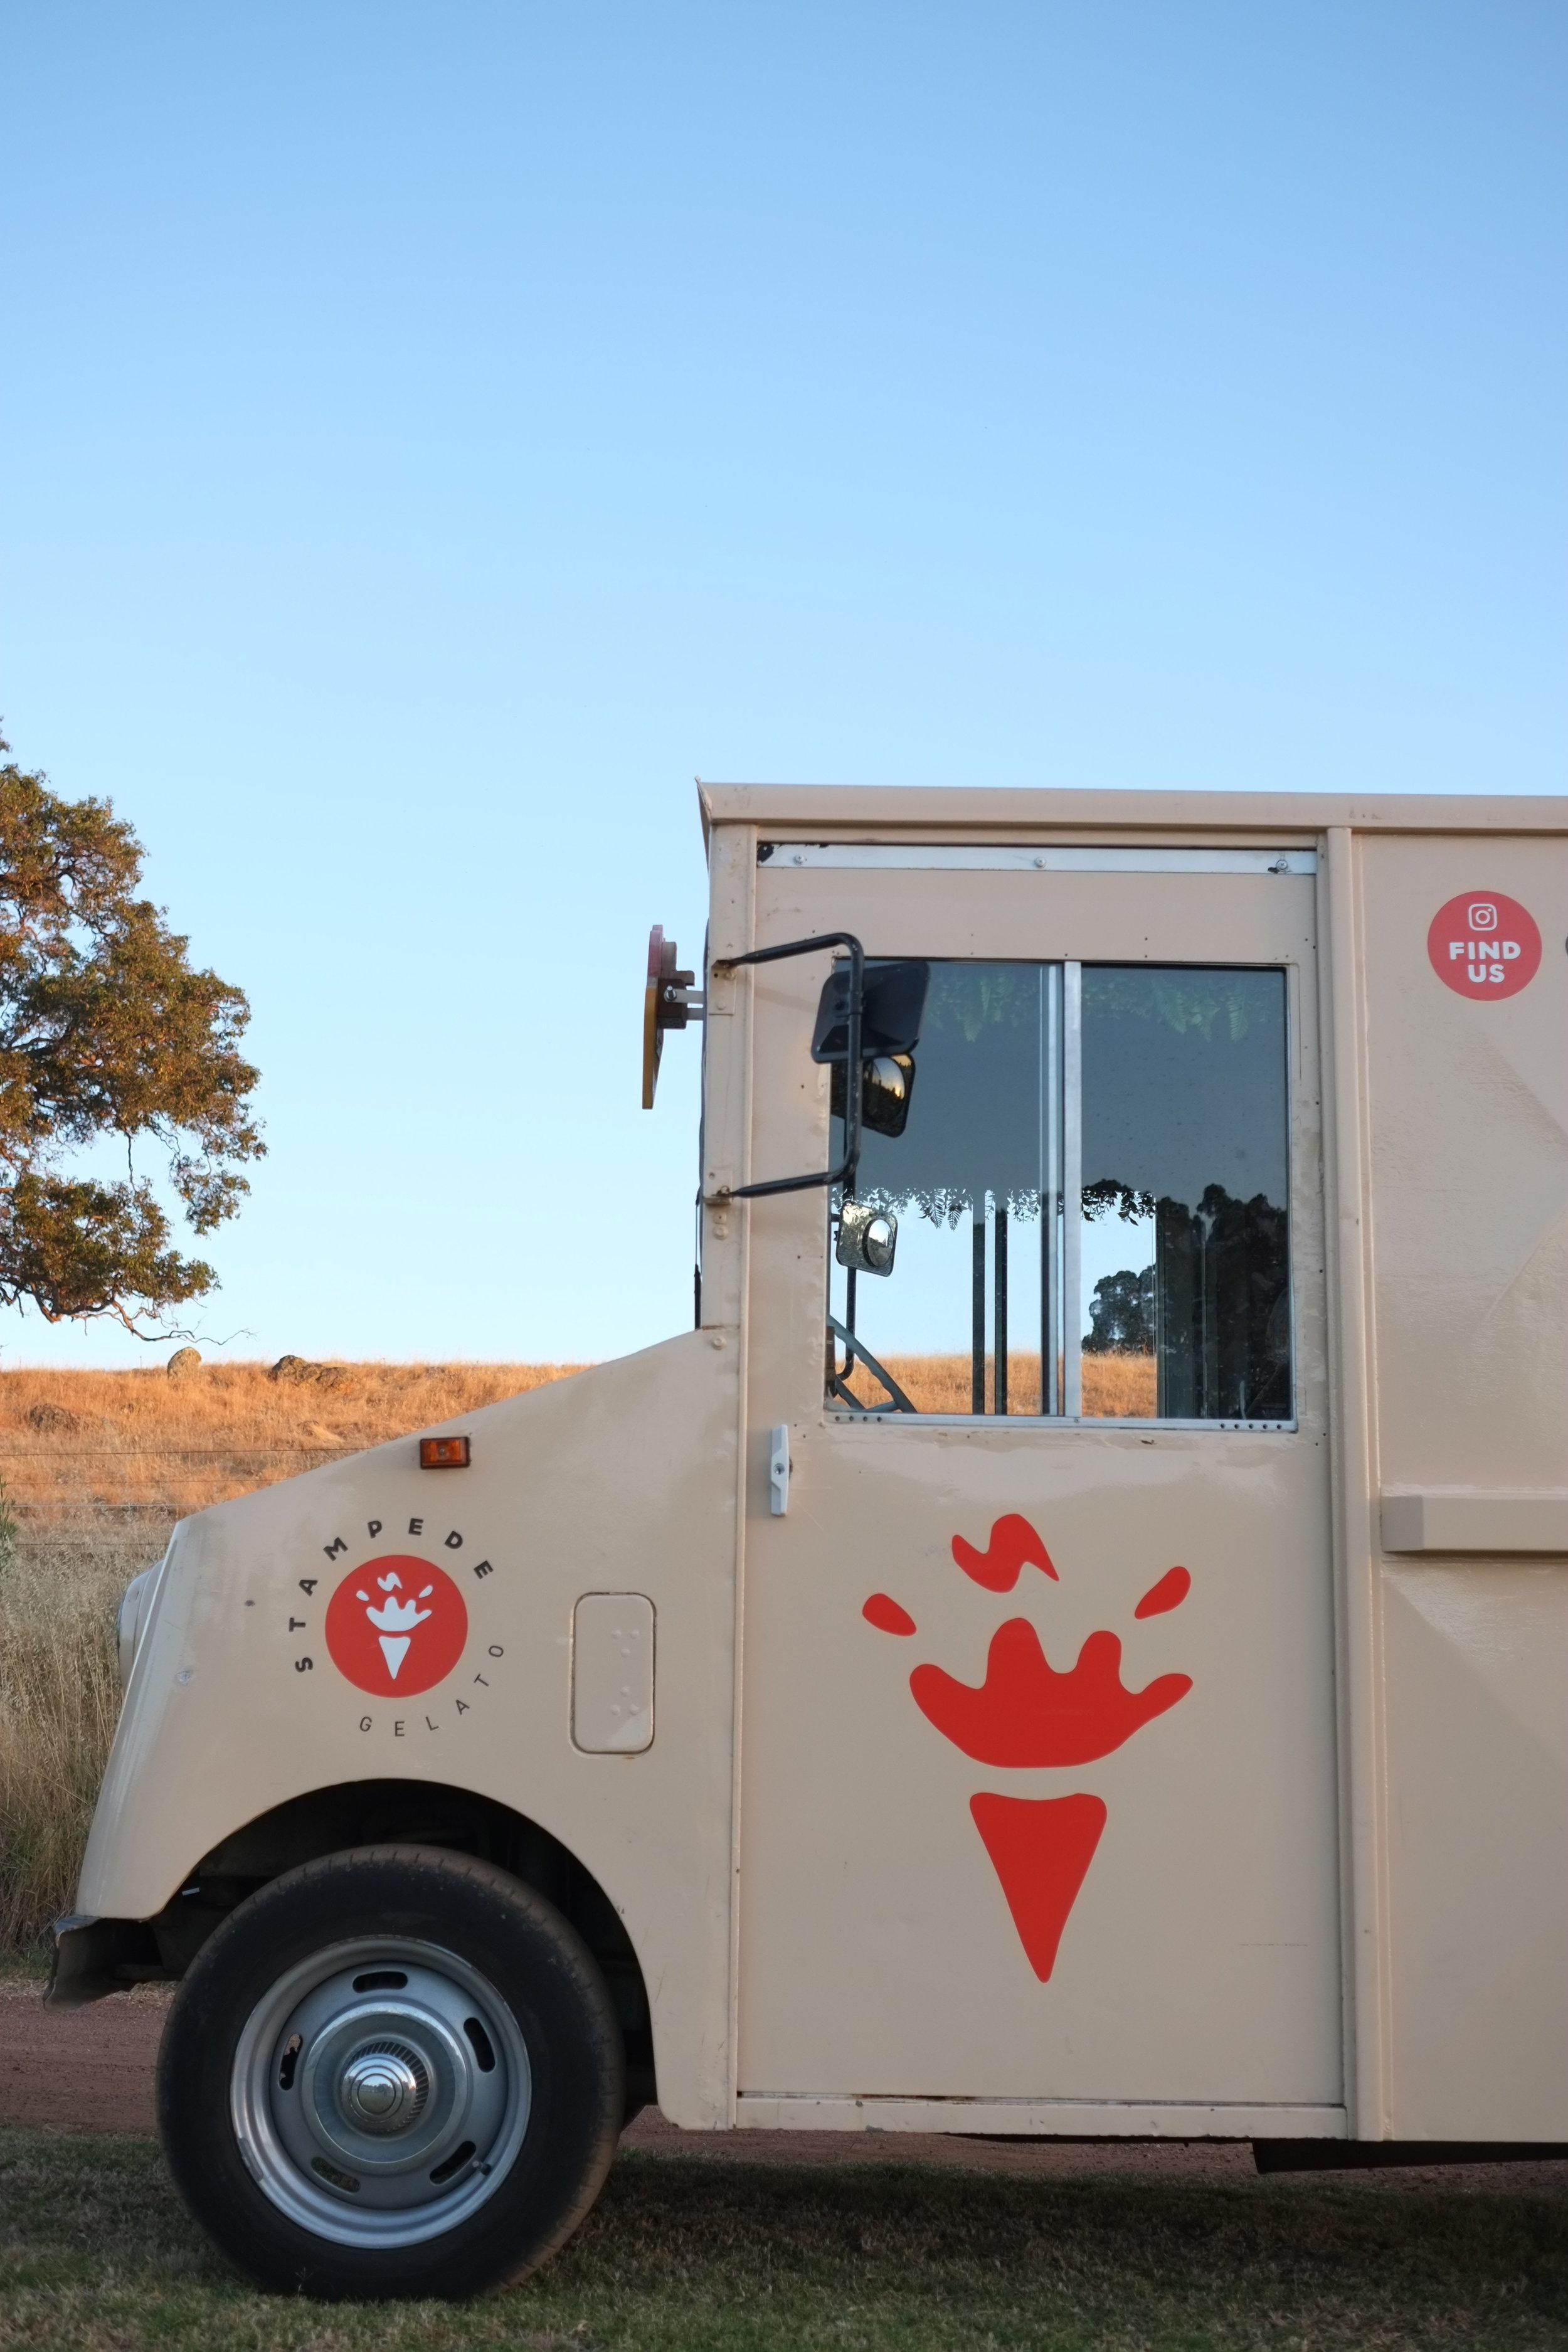 Our solar powered posty van turned gelato truck at a wedding.